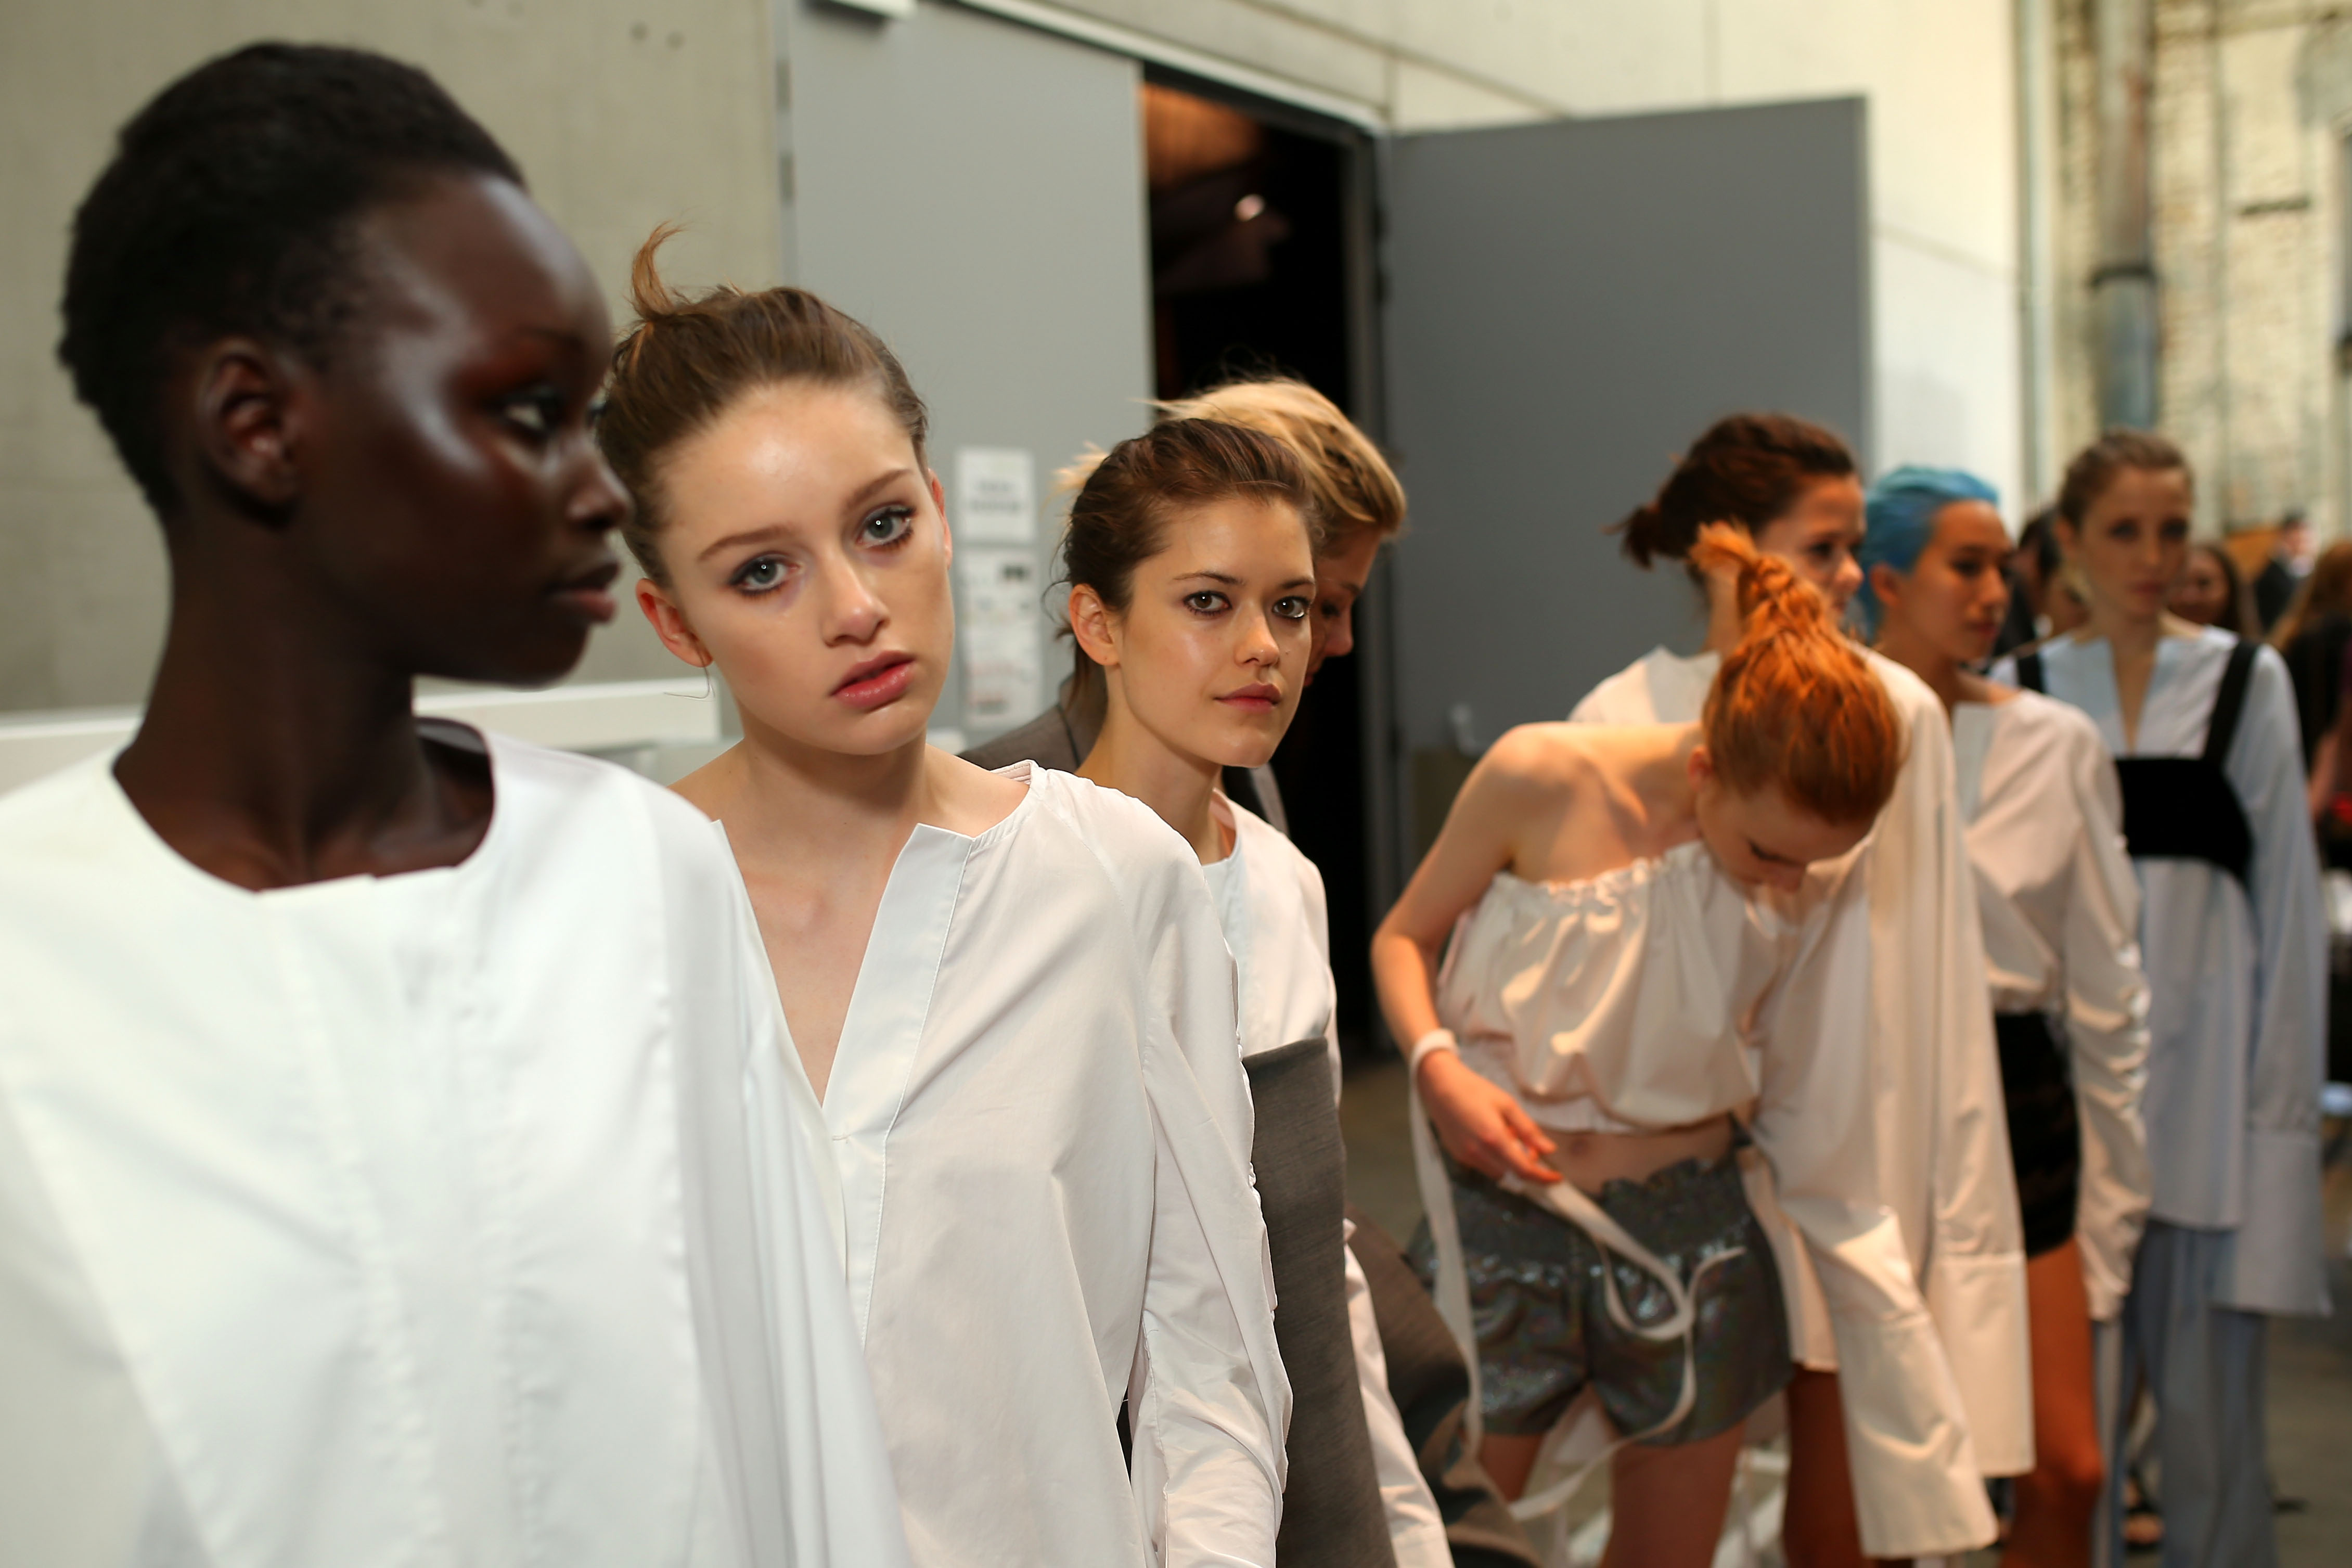 SYDNEY, AUSTRALIA - MAY 16: Models pose backstage ahead of the Georgia Alice show at Mercedes-Benz Fashion...